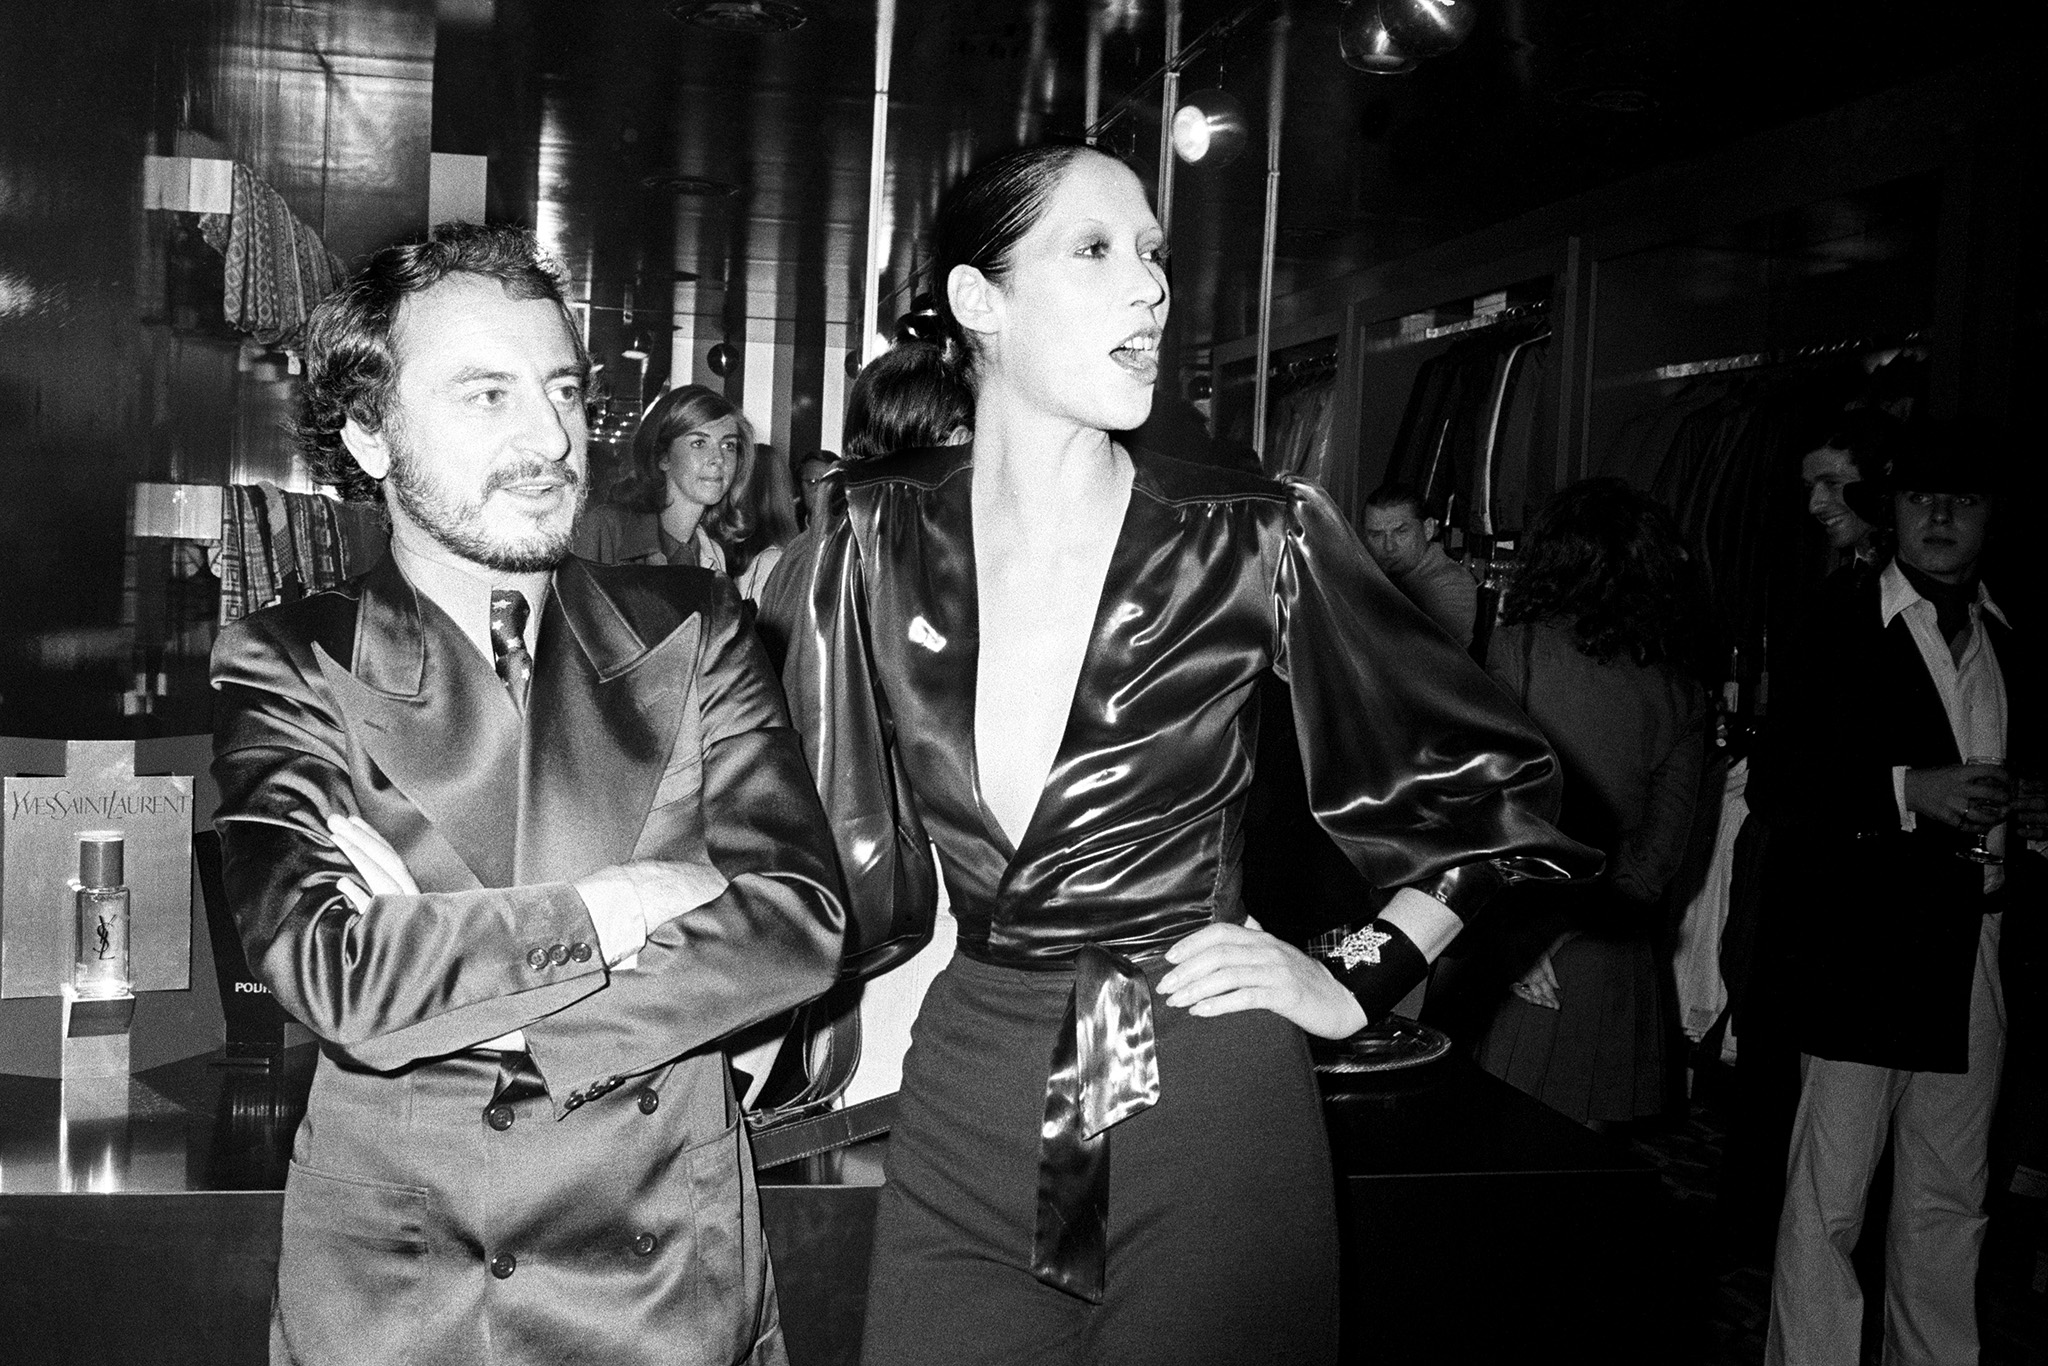 Pierre Berge and Marina Schiano attending the Yves St. Laurent Rive Gauche Boutique pour Homme opening on October 6, 1971 in New York.